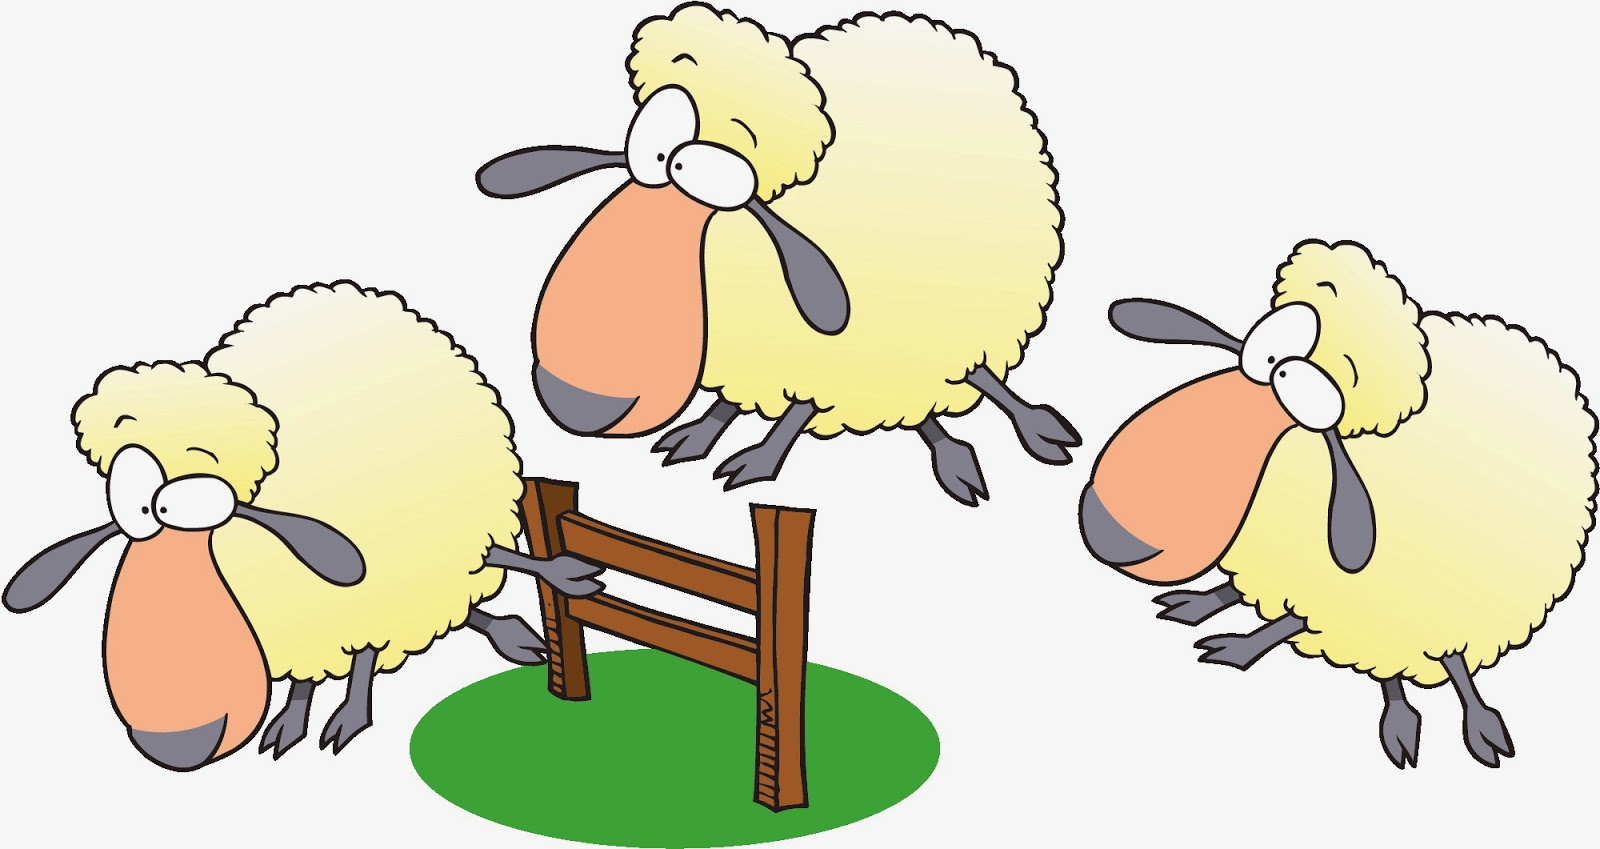 Sometimes even counting sheep doesn't work.